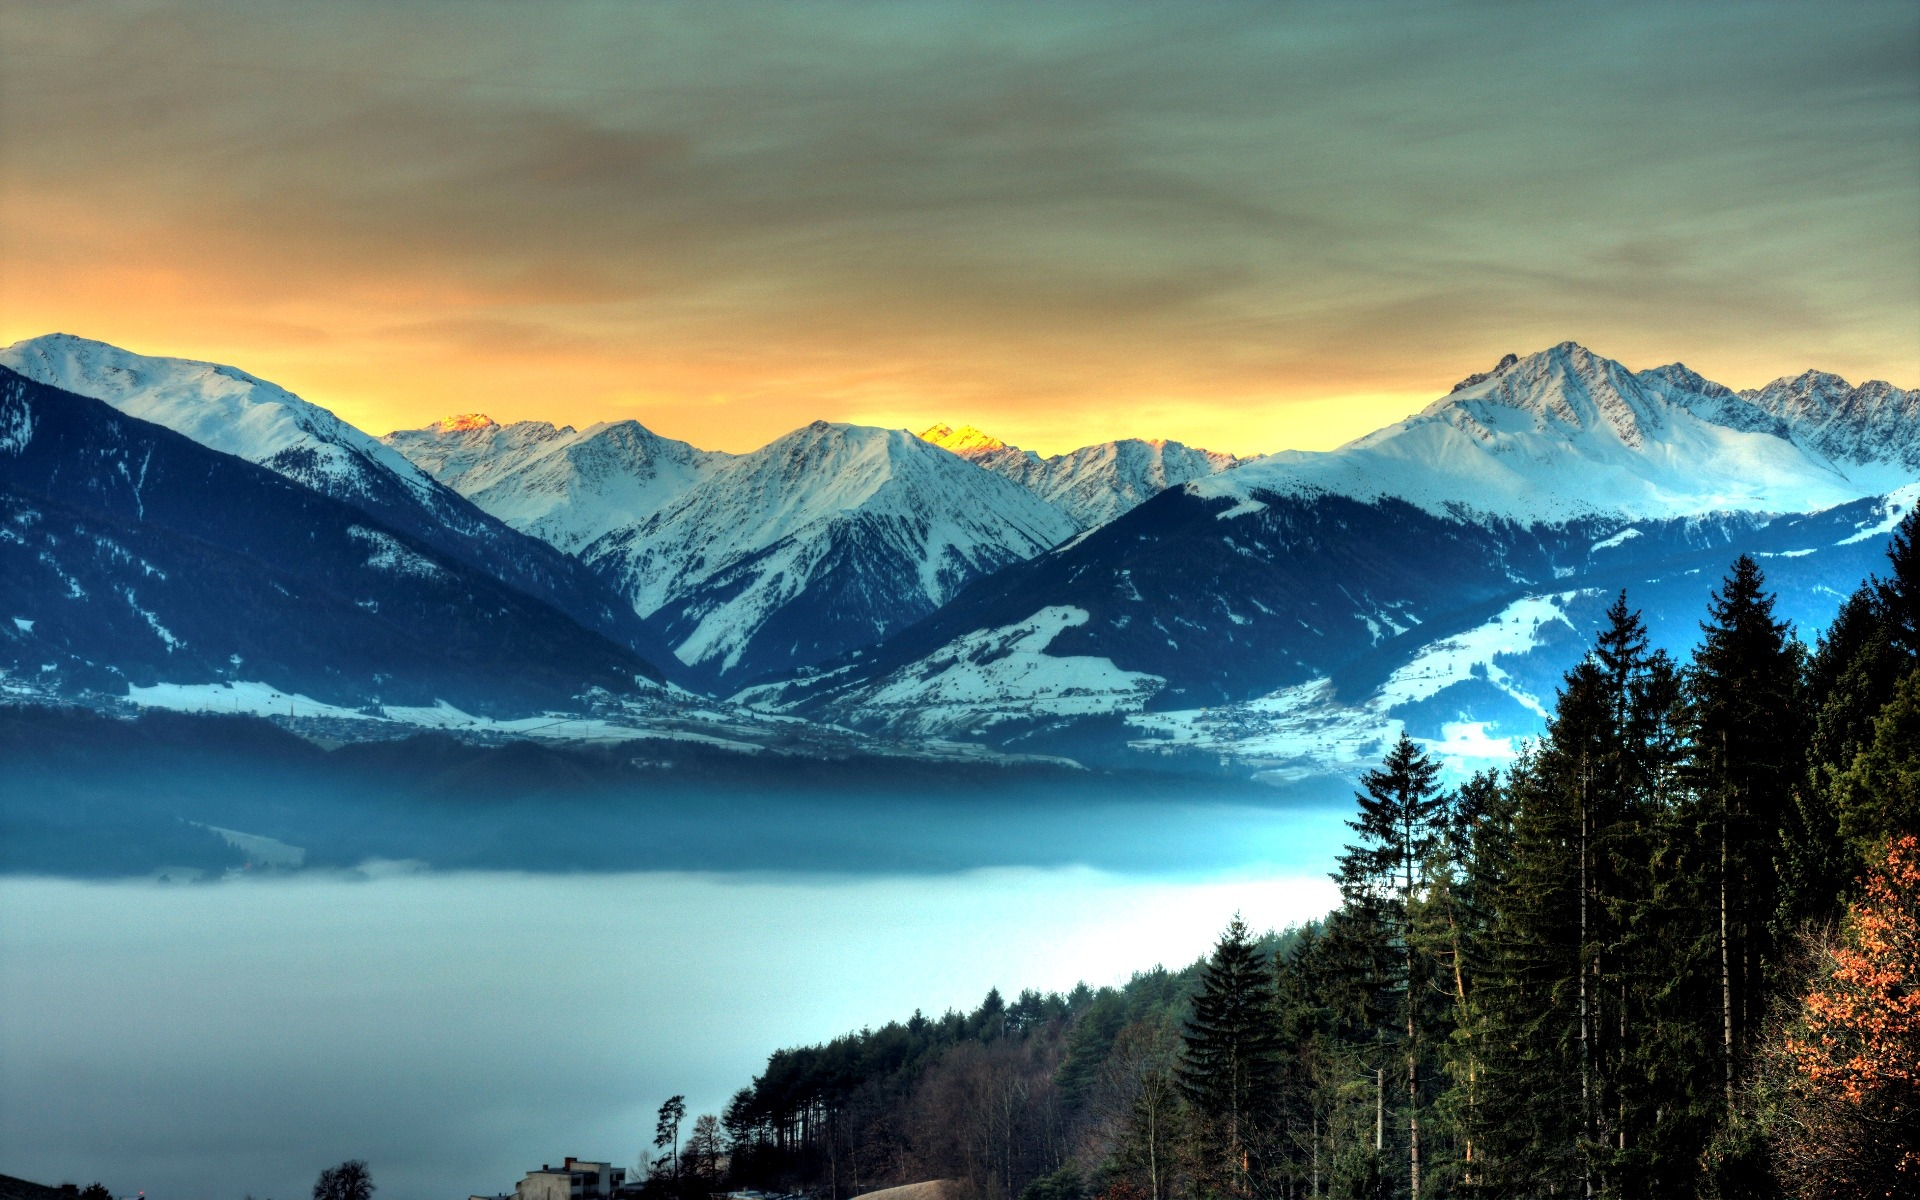 Mountain Landscape Wallpaper Images 6 HD Wallpapers